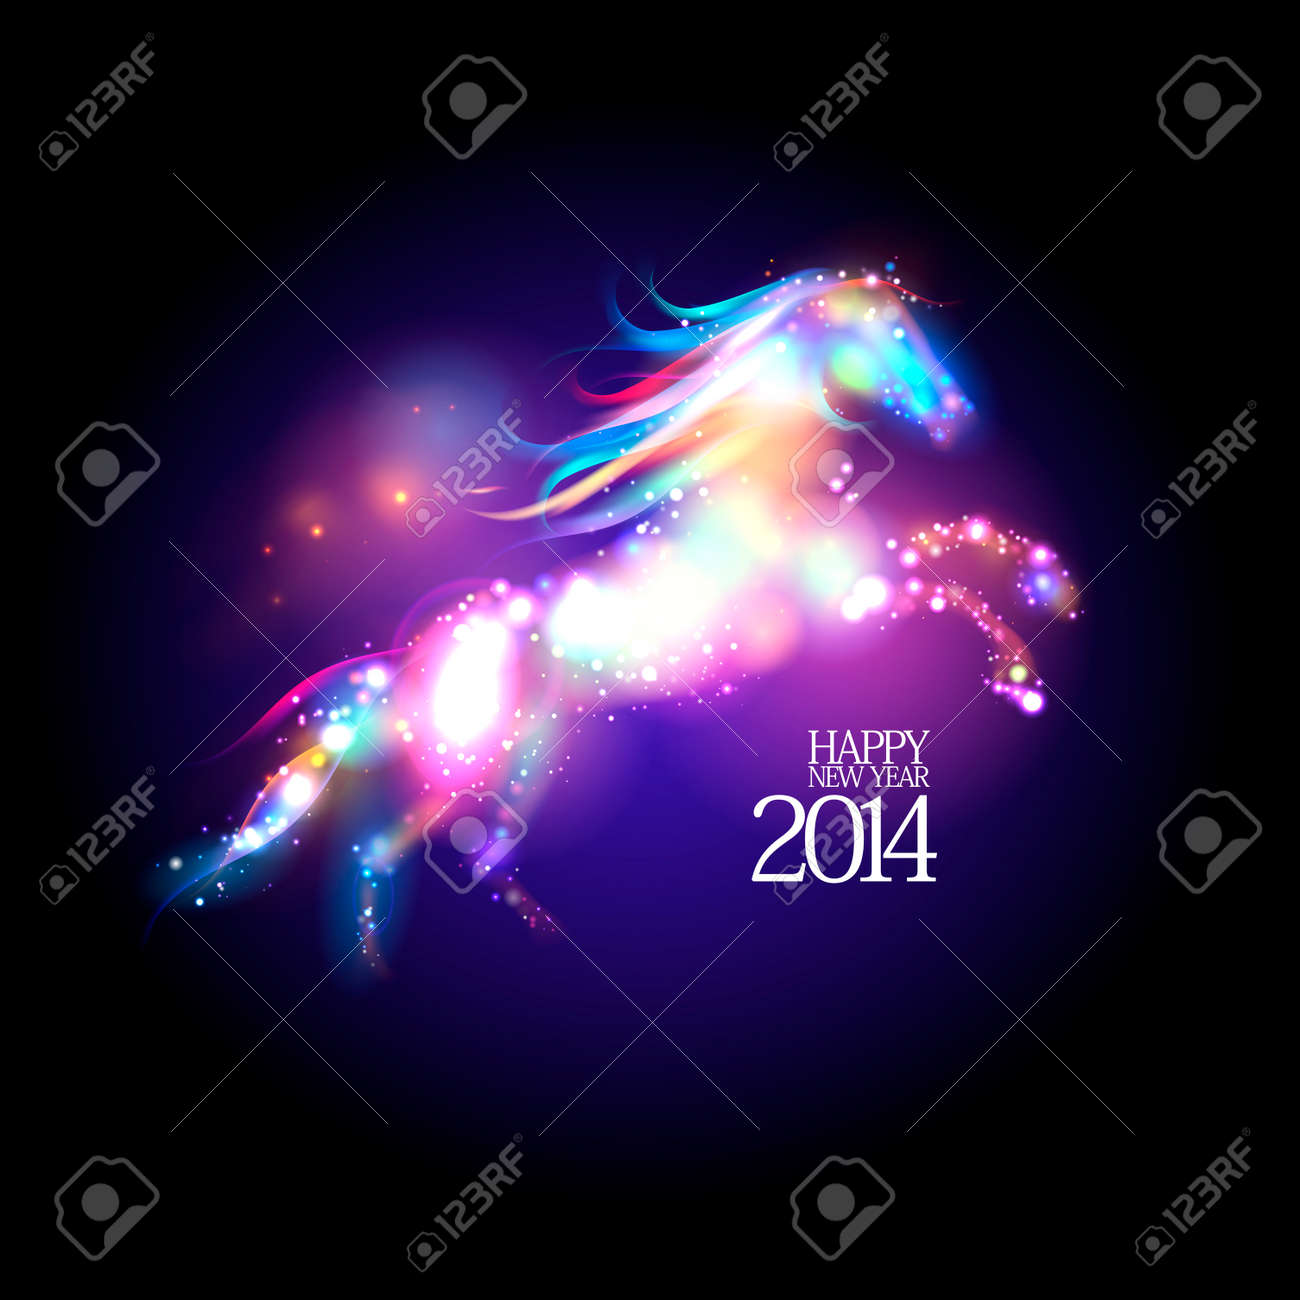 2014 new year design with abstract neon horse. Stock Vector - 23384765